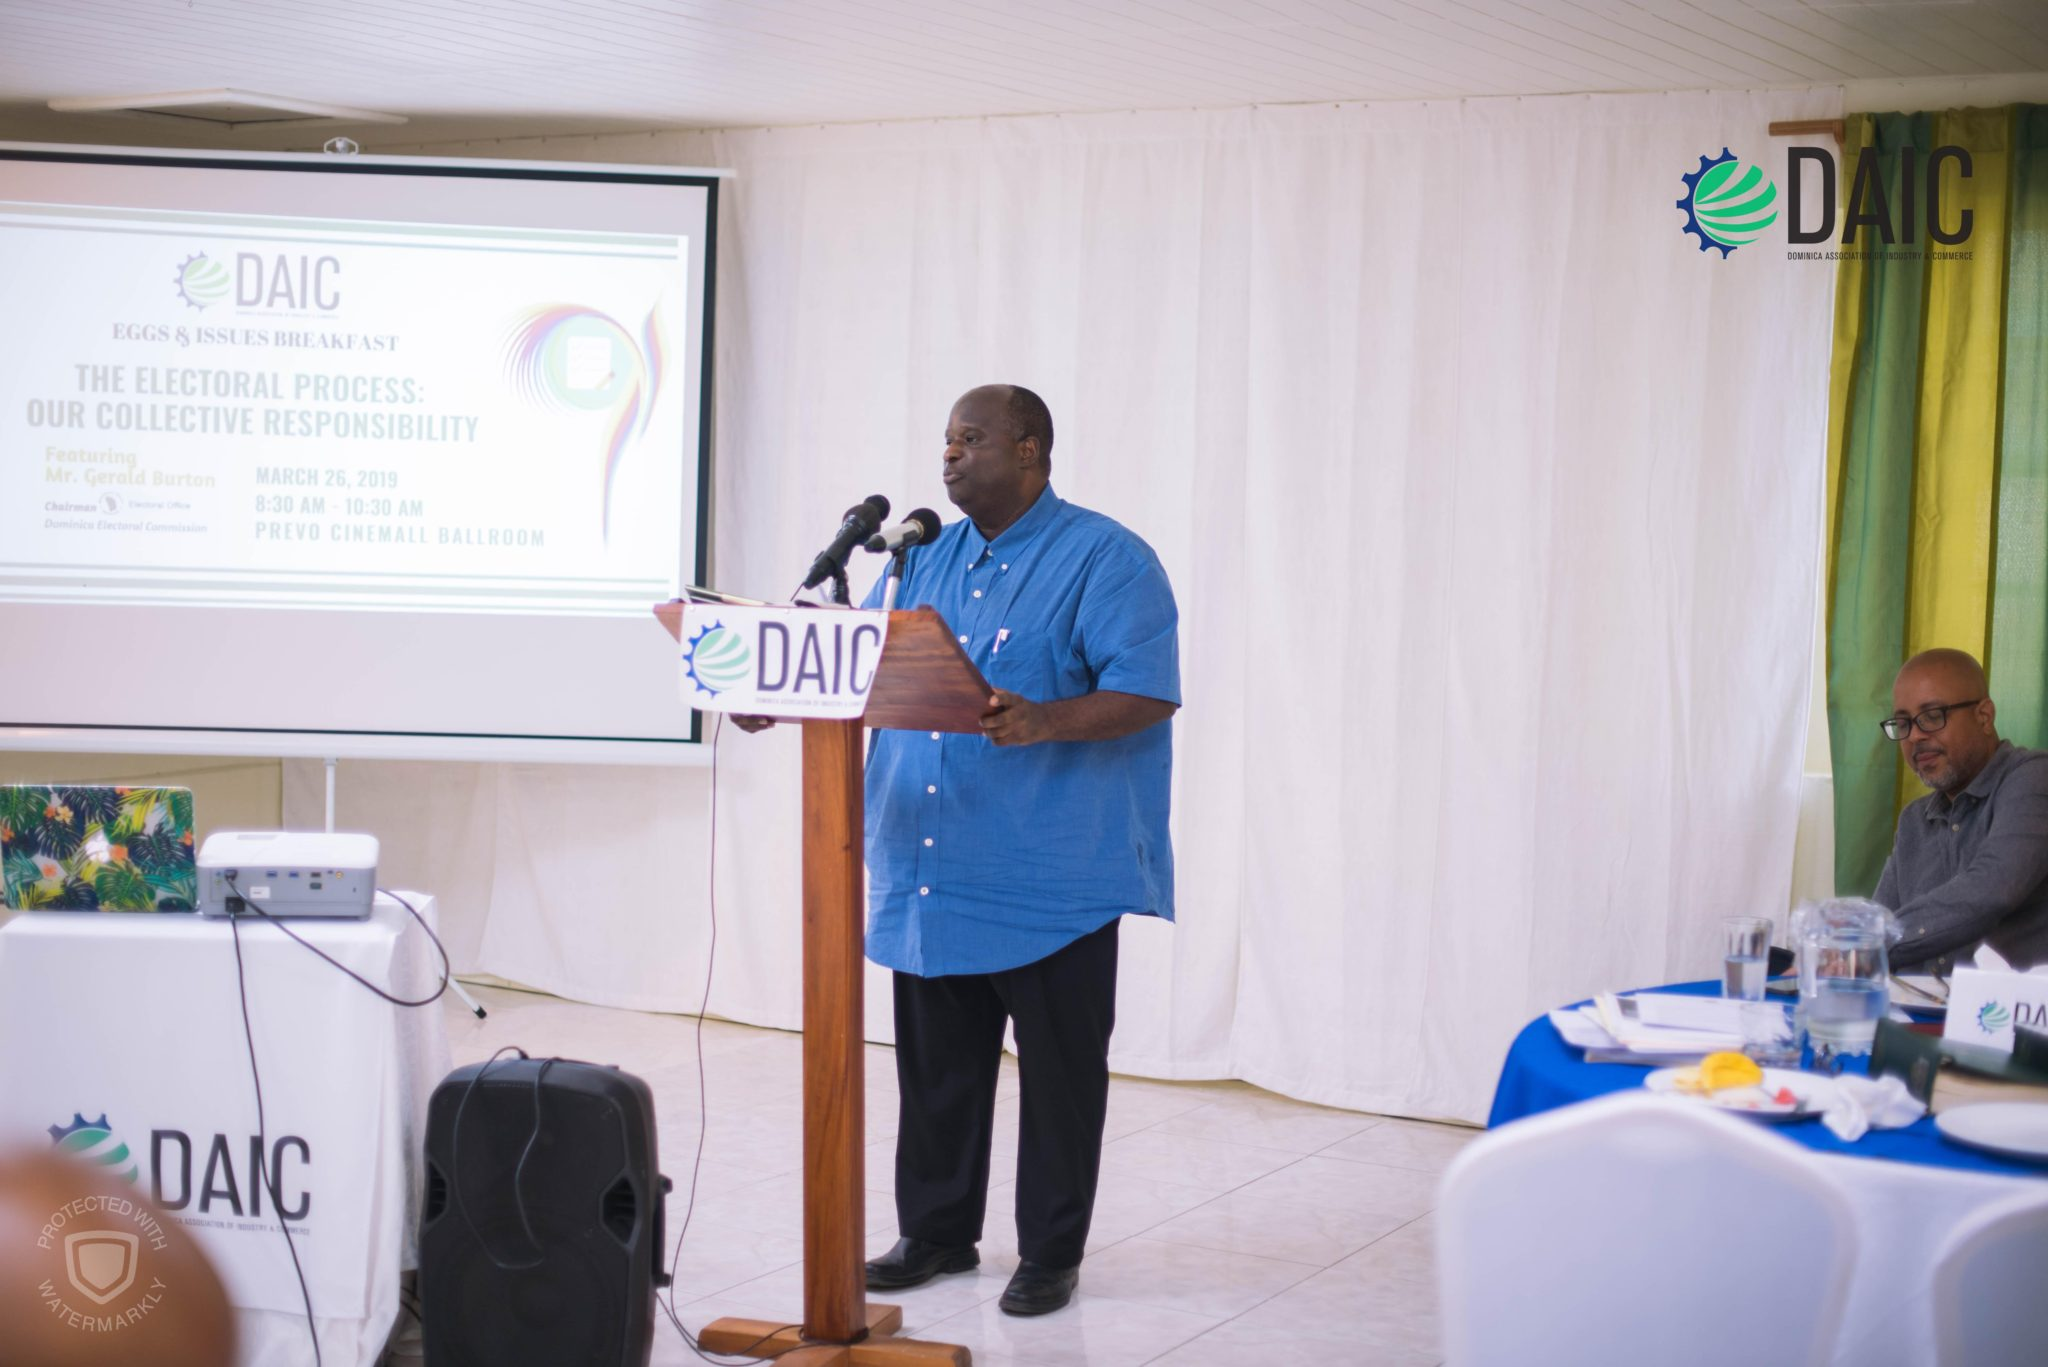 DAIC Encourages the Private Sector and other Stakeholders to Fulfill Responsibility in Electoral Process